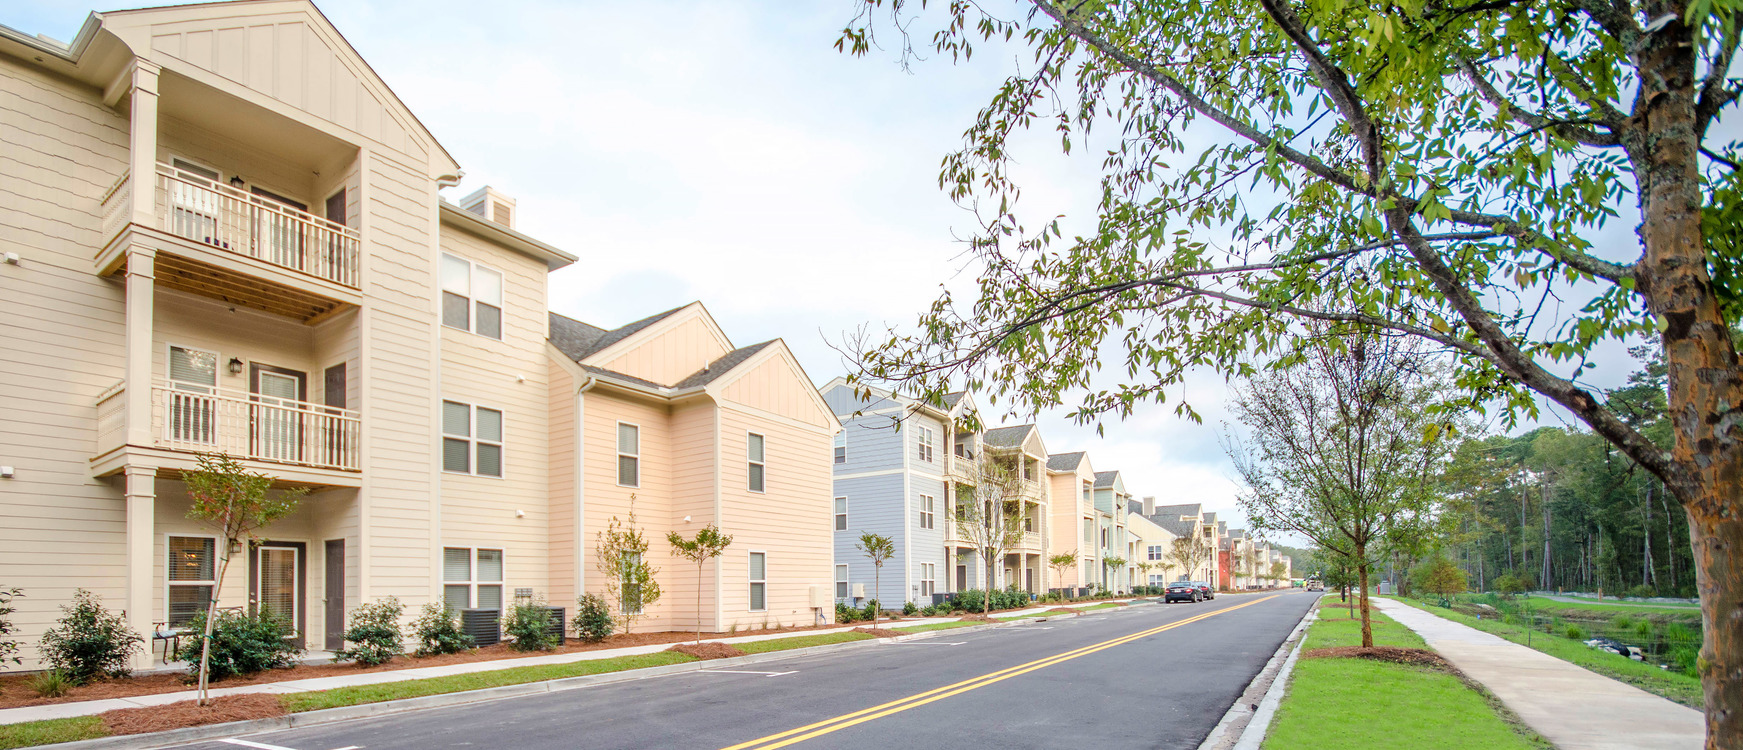 Exterior of Apartments at Shade Tree in Johns Island, SC